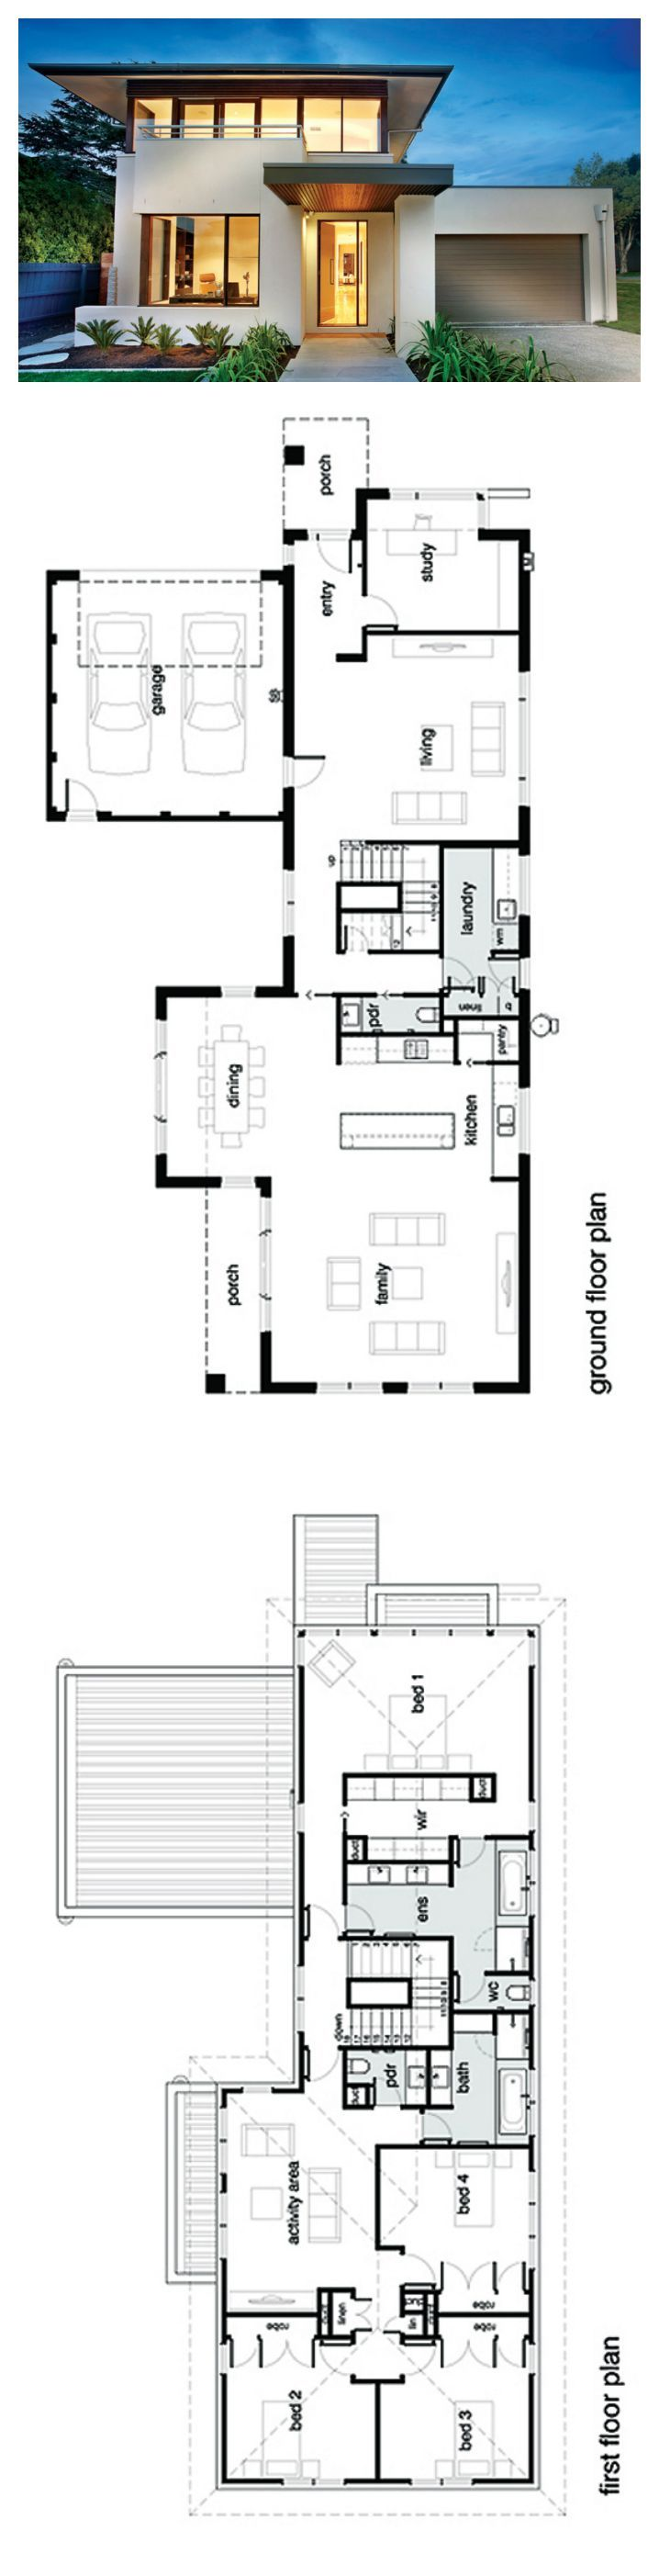 Plan #496-18; 3584 SF | 4 bed + study | 2.5 bath. Modern House ...